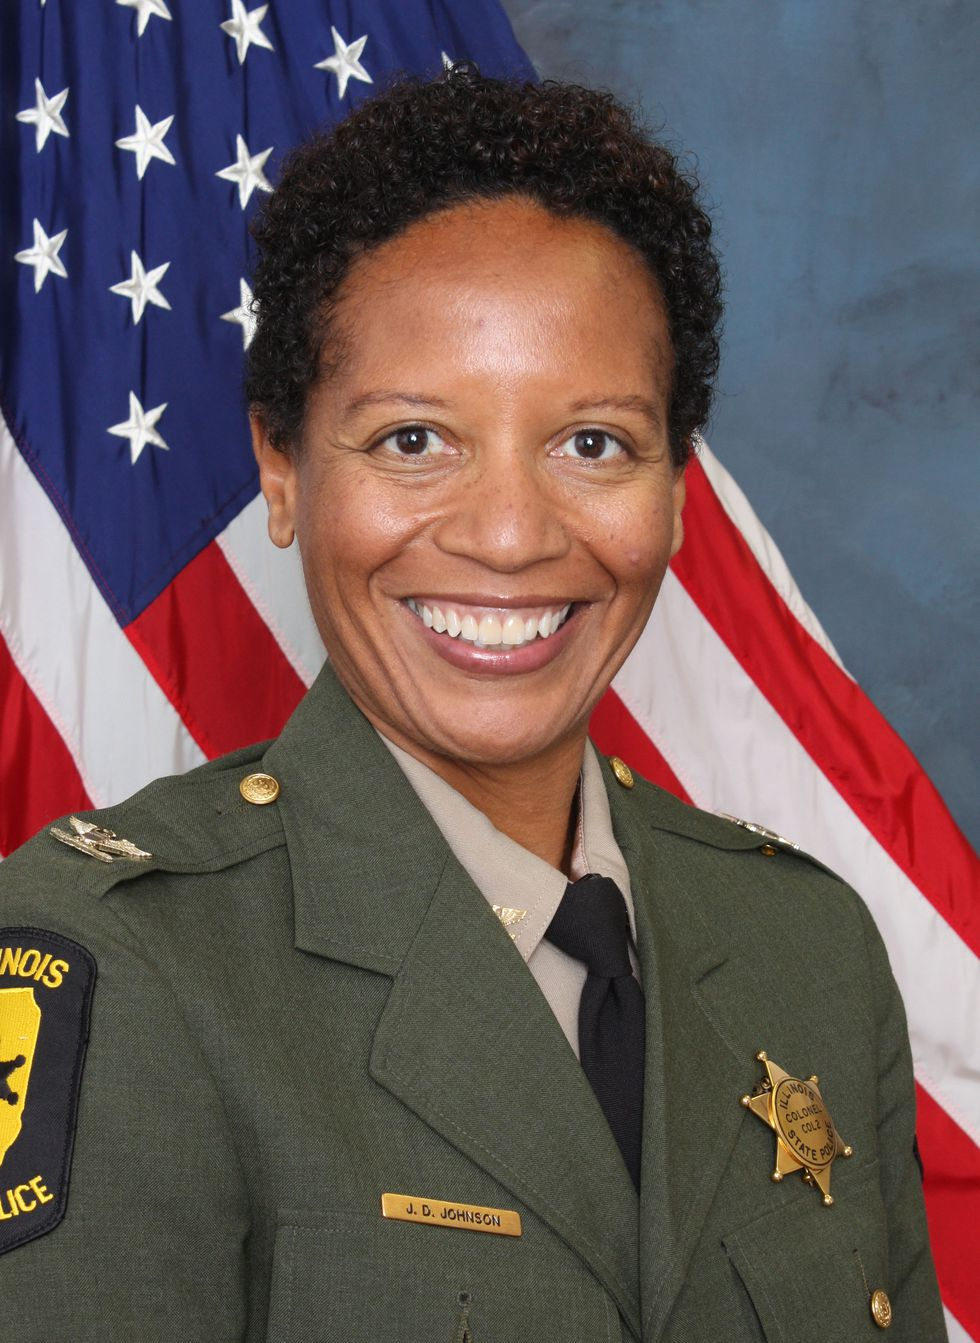 Ret. Colonel JoAnn Johnson the first African-American female to attain the high-ranking position.